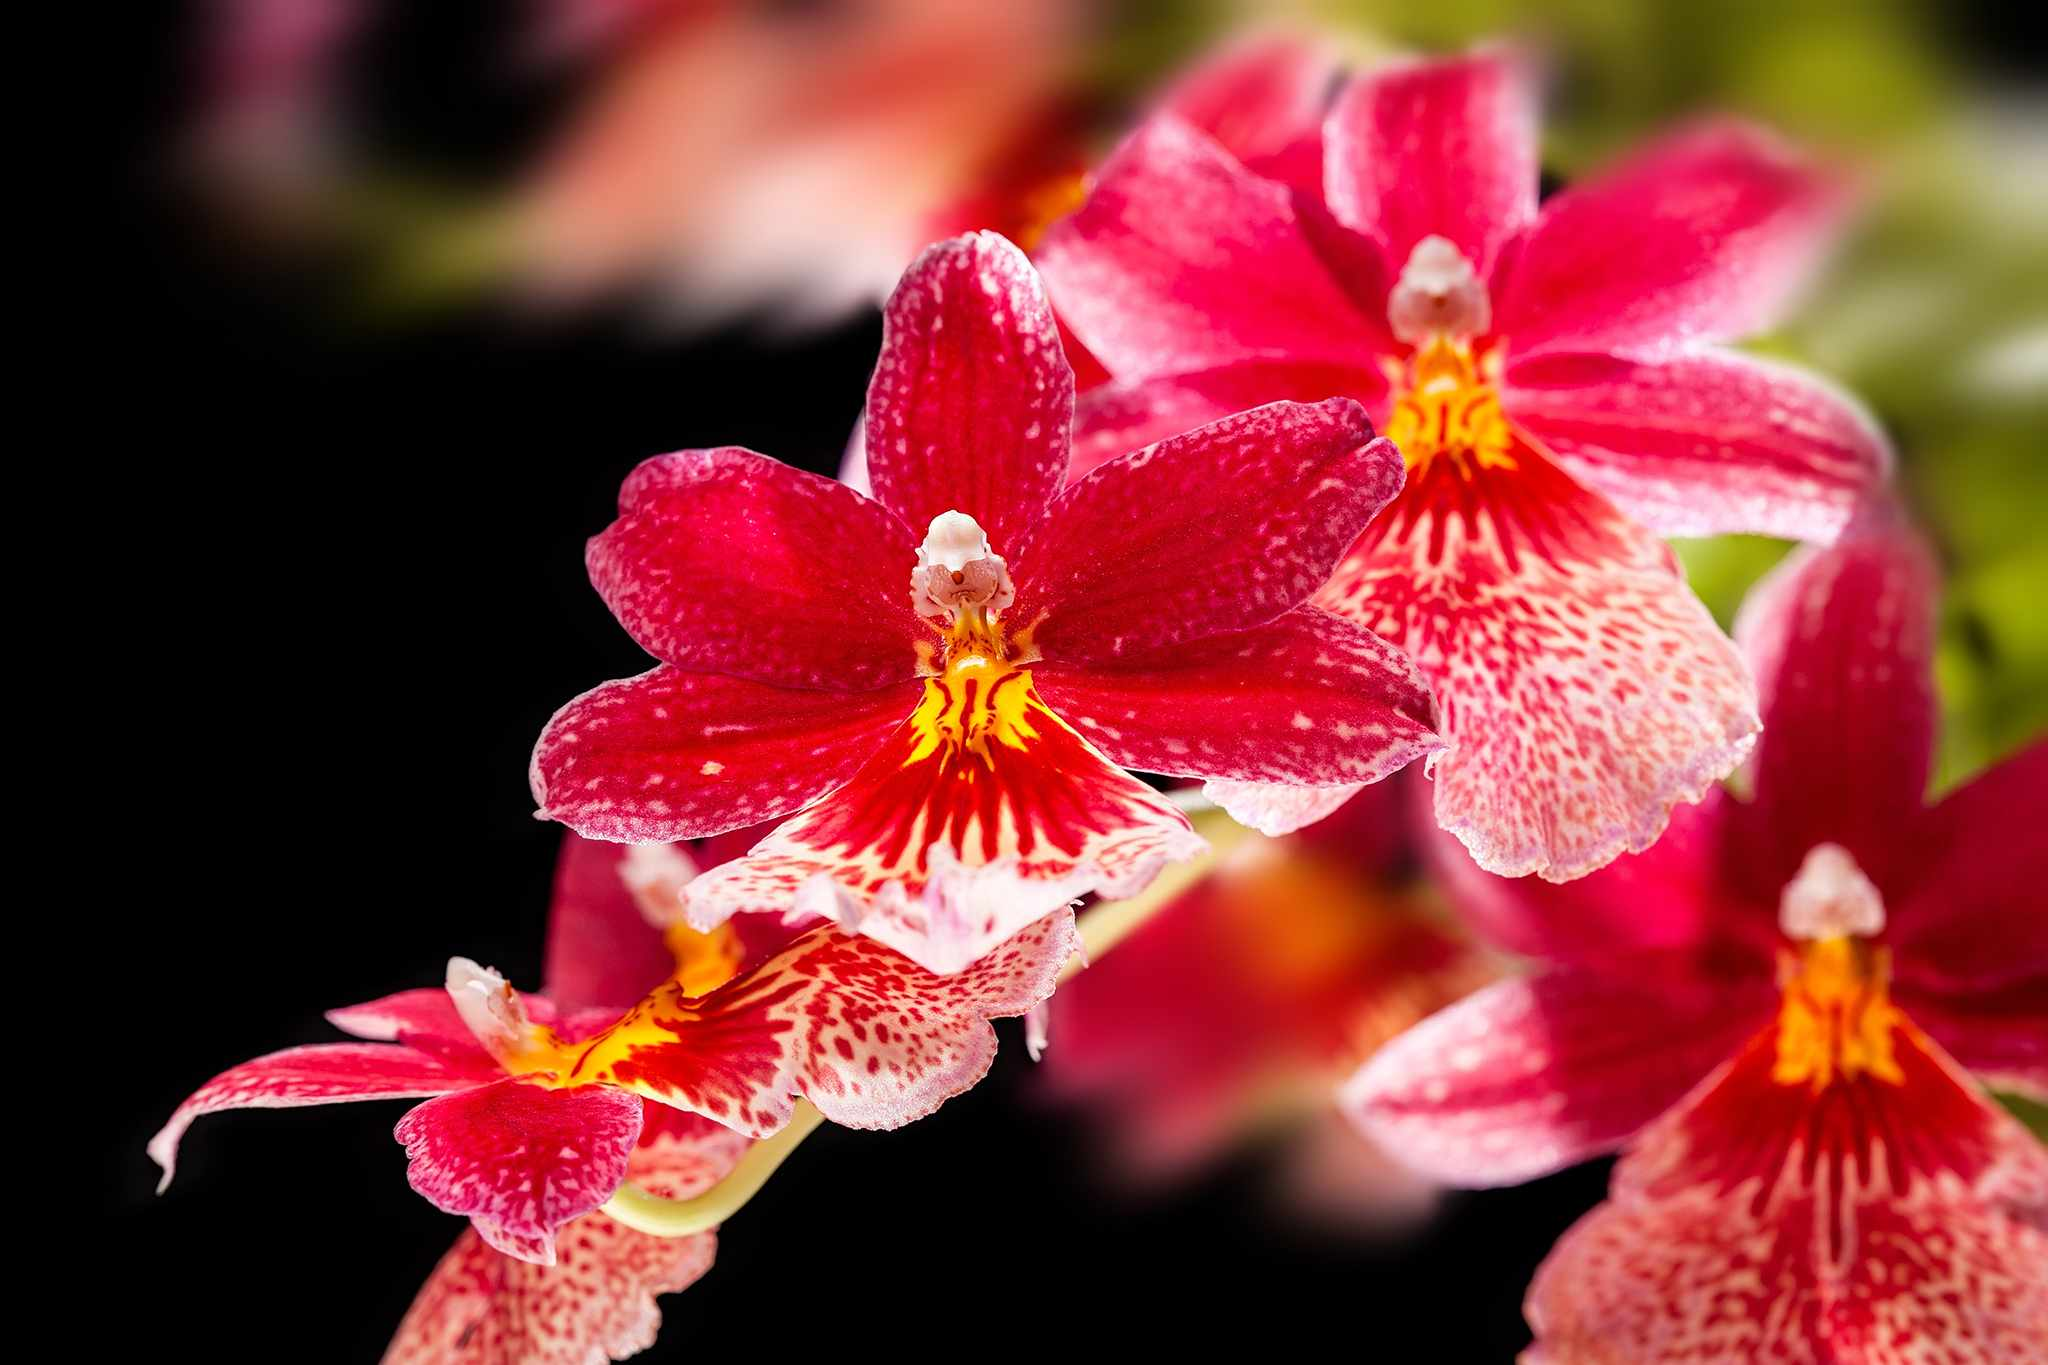 Cambria orchid. Credit: Getty Images